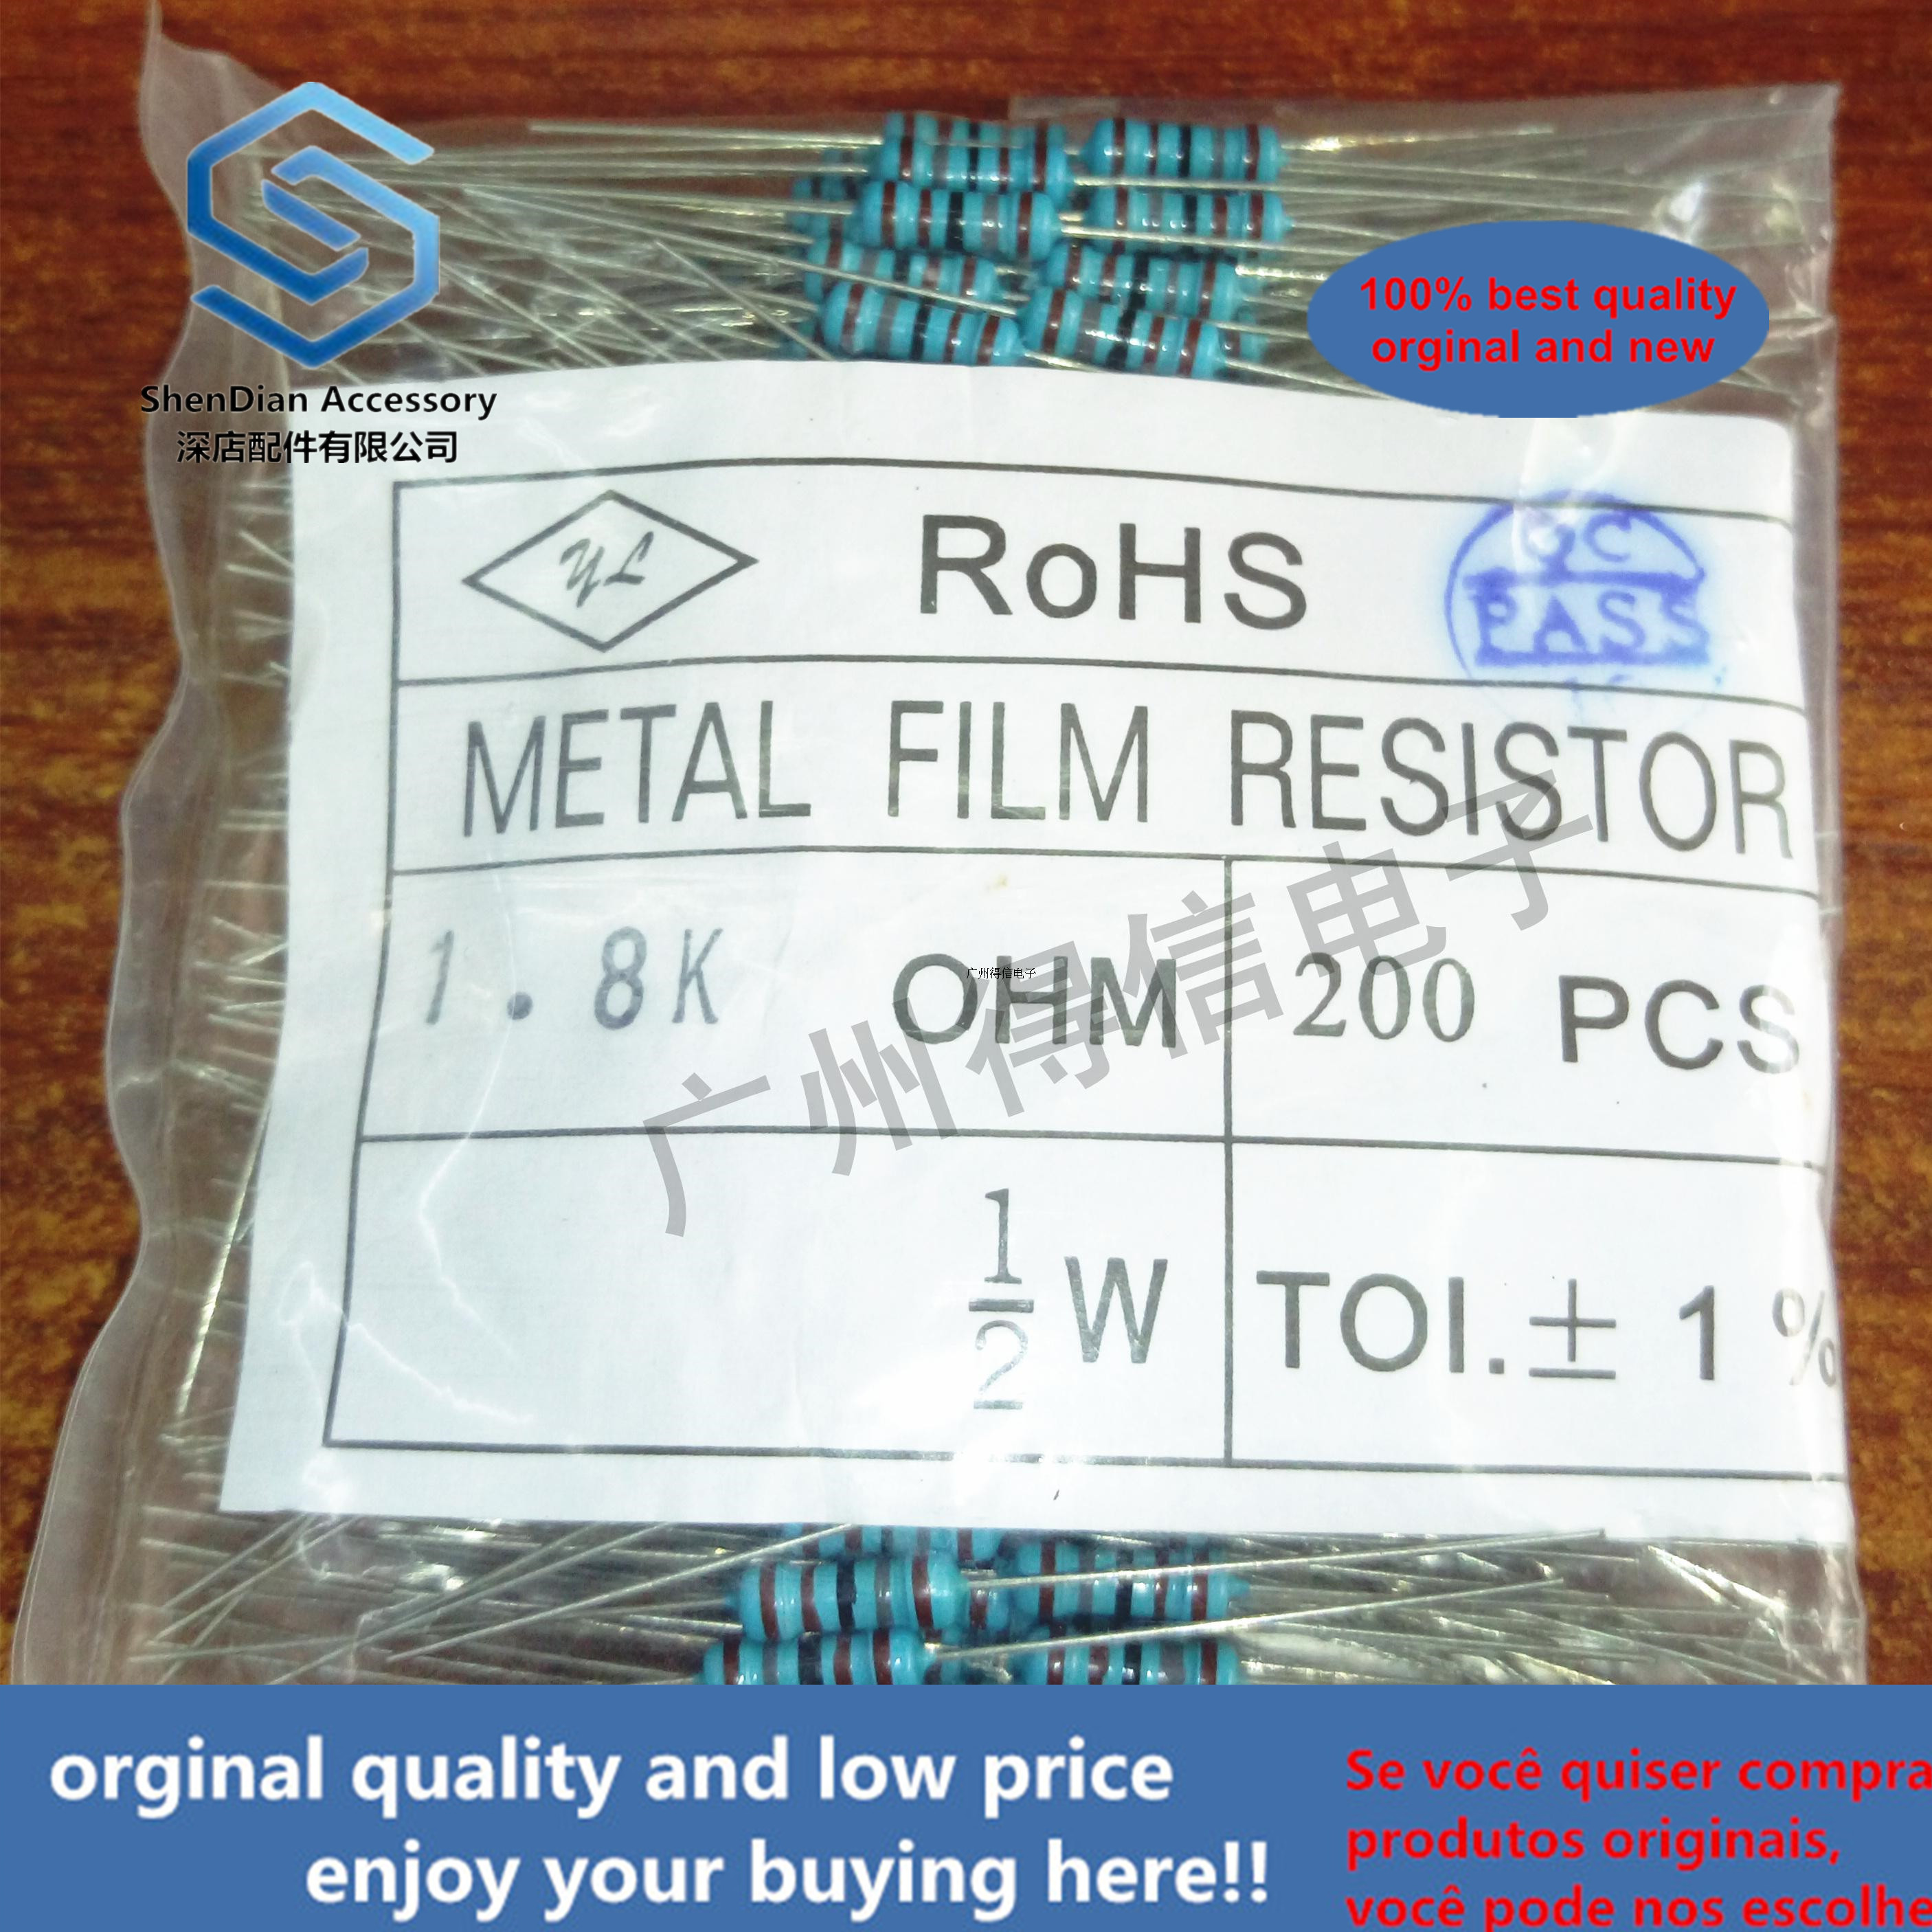 200pcs 1 / 2W 200R 200 Euro 1% Brand New Metal Film Iron Feet Resistance Bag 200 Pcs Per Pack